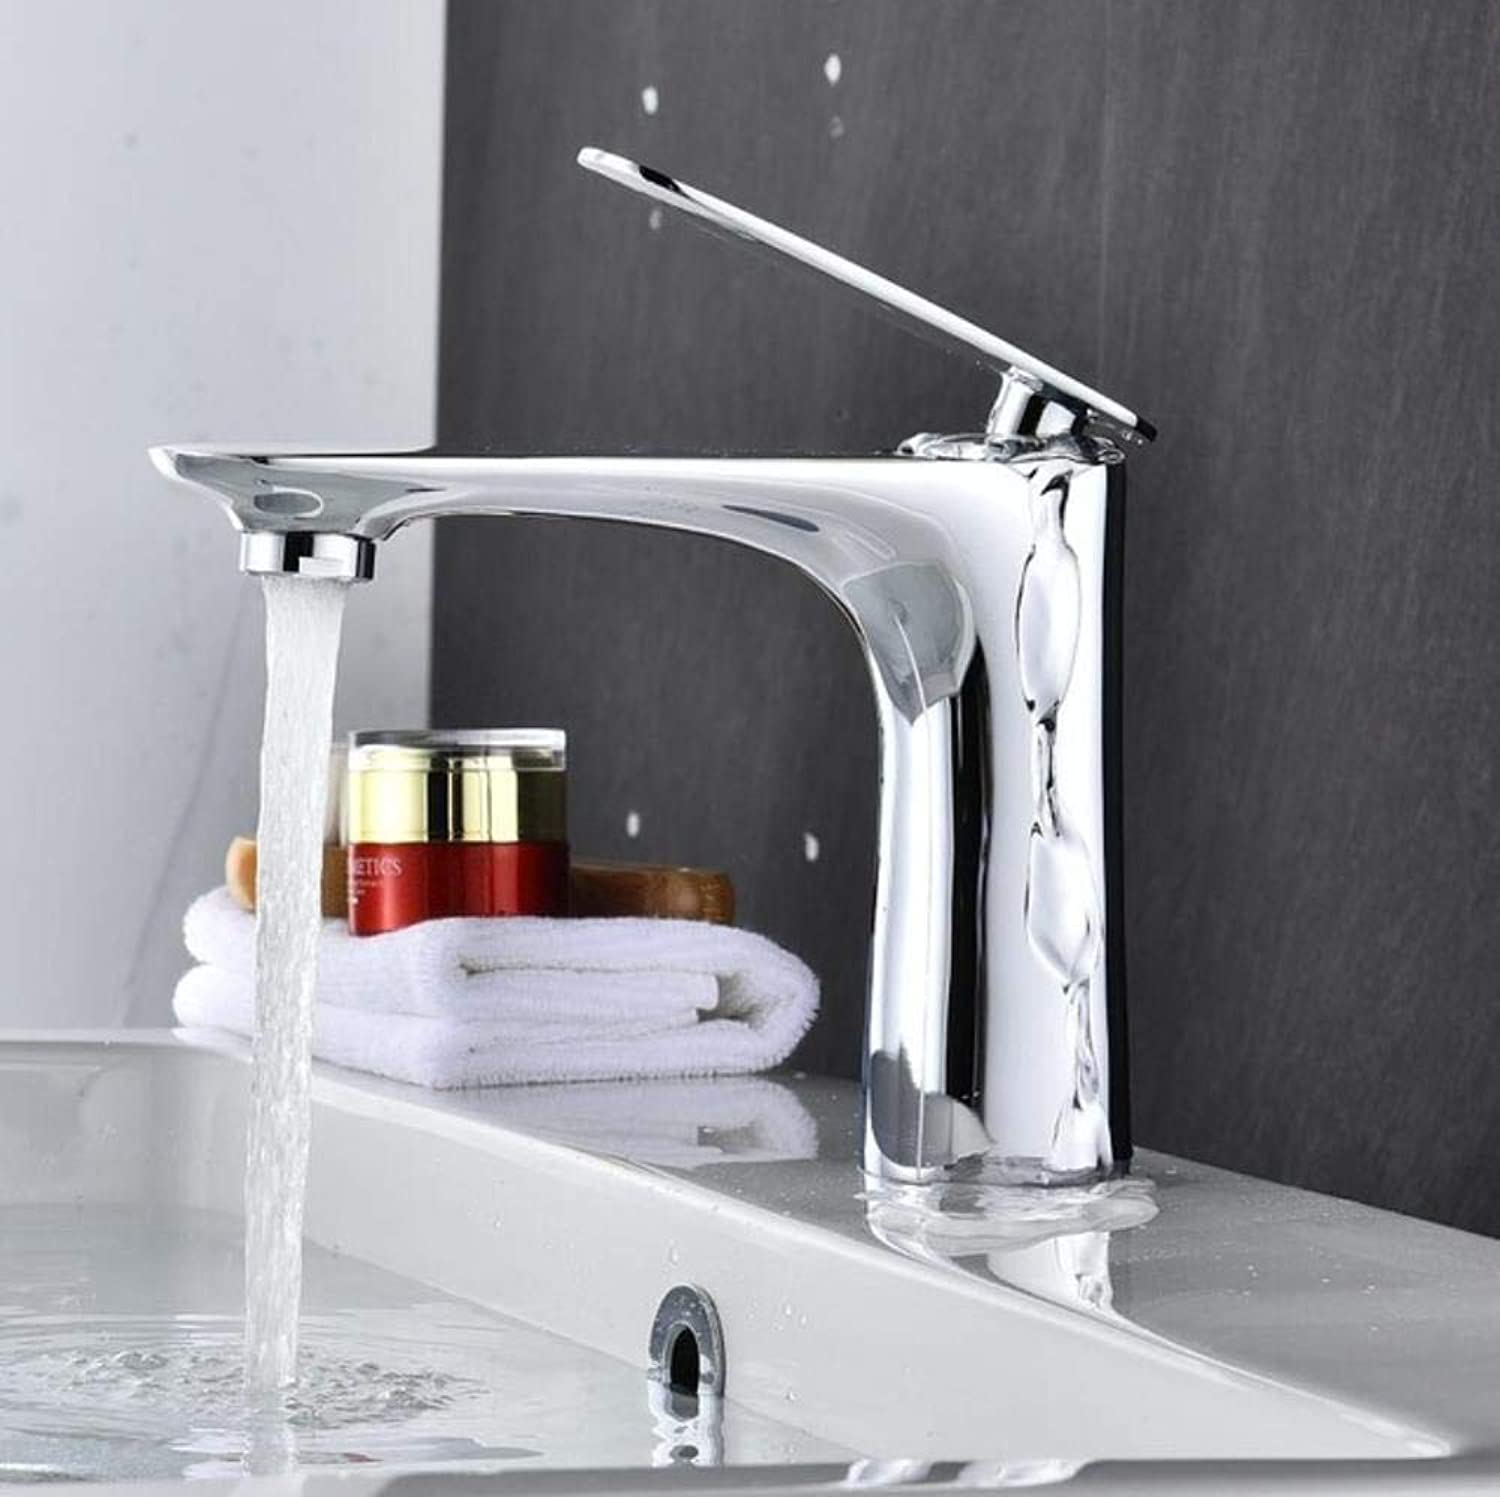 Kai&Guo Brass Chrome gold white black red orange basin Faucet Hot and Cold Water Sink Mixer Tap White tap Bathroom Basin mixer,chrome